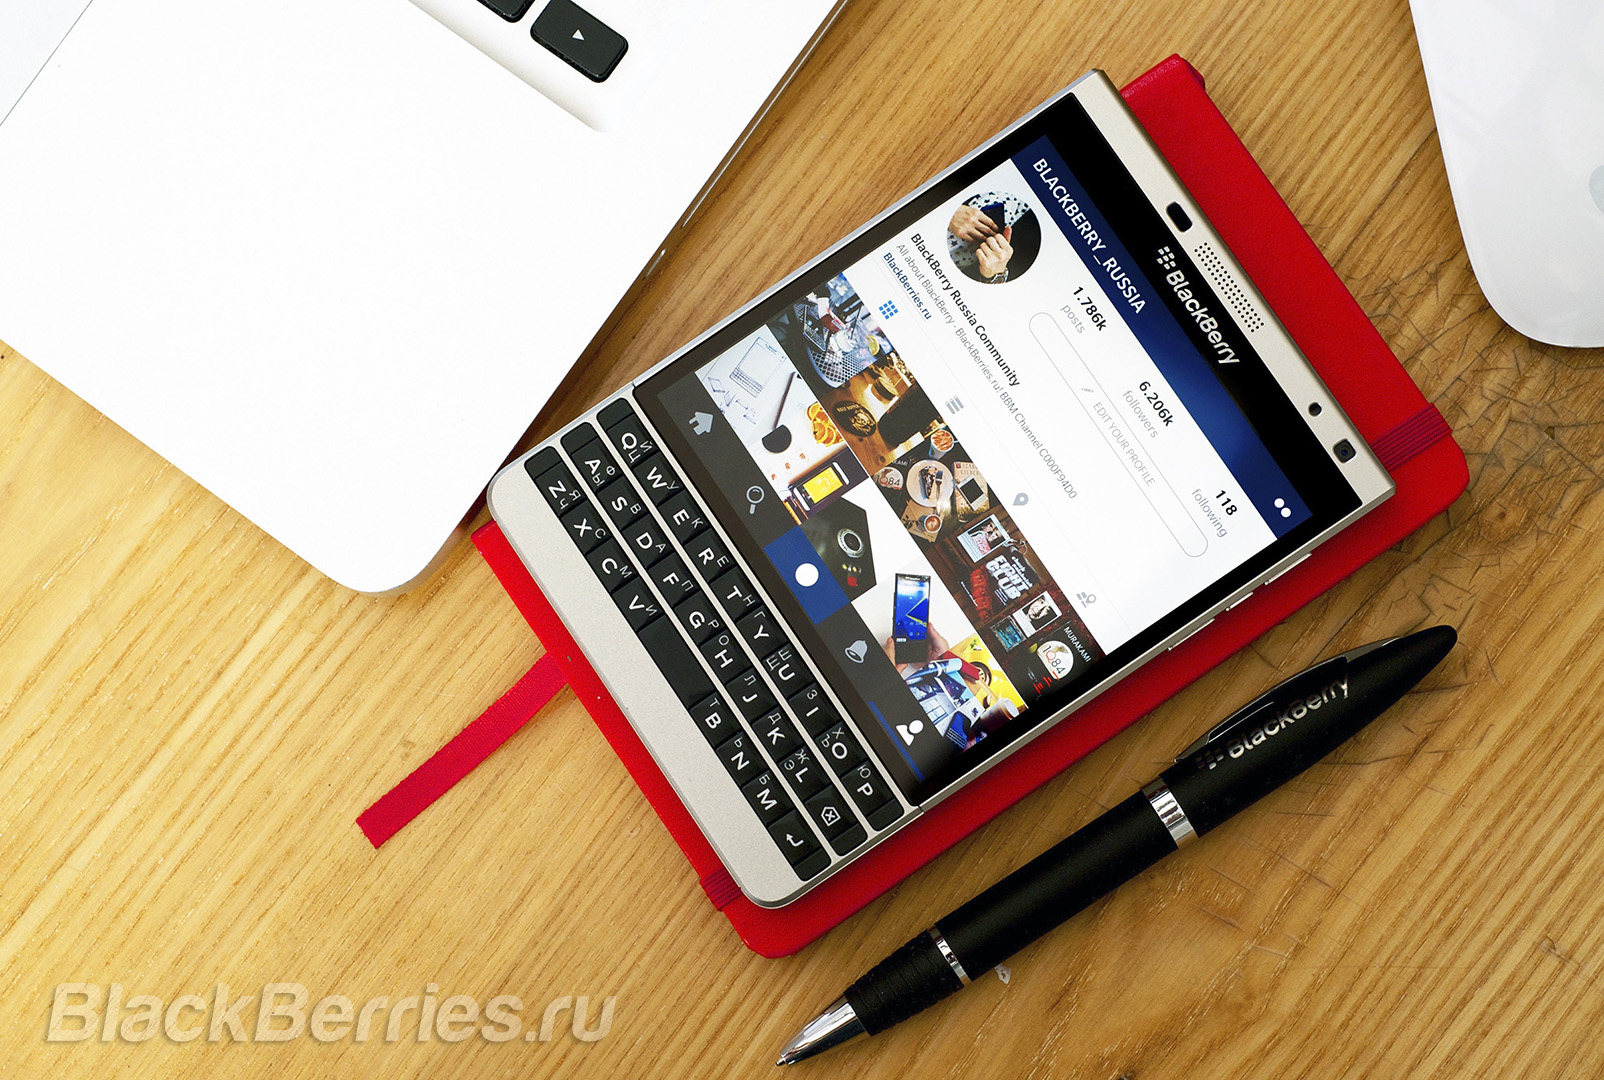 BlackBerry-Passport-SE-Apps-19-09-04